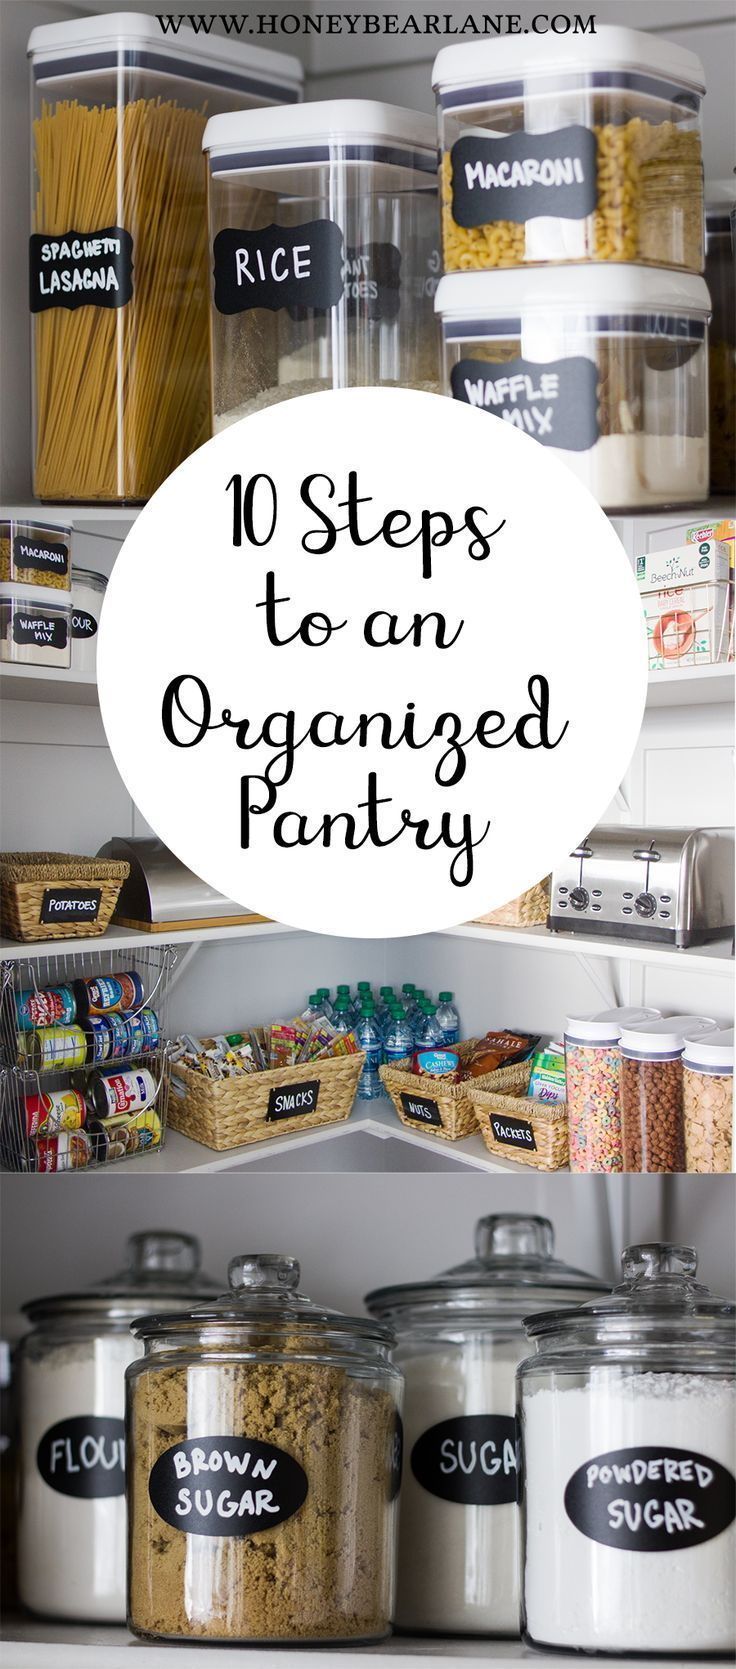 Pin by JMDJ on Life with Camille | Pinterest | Find food, Pantry and ...